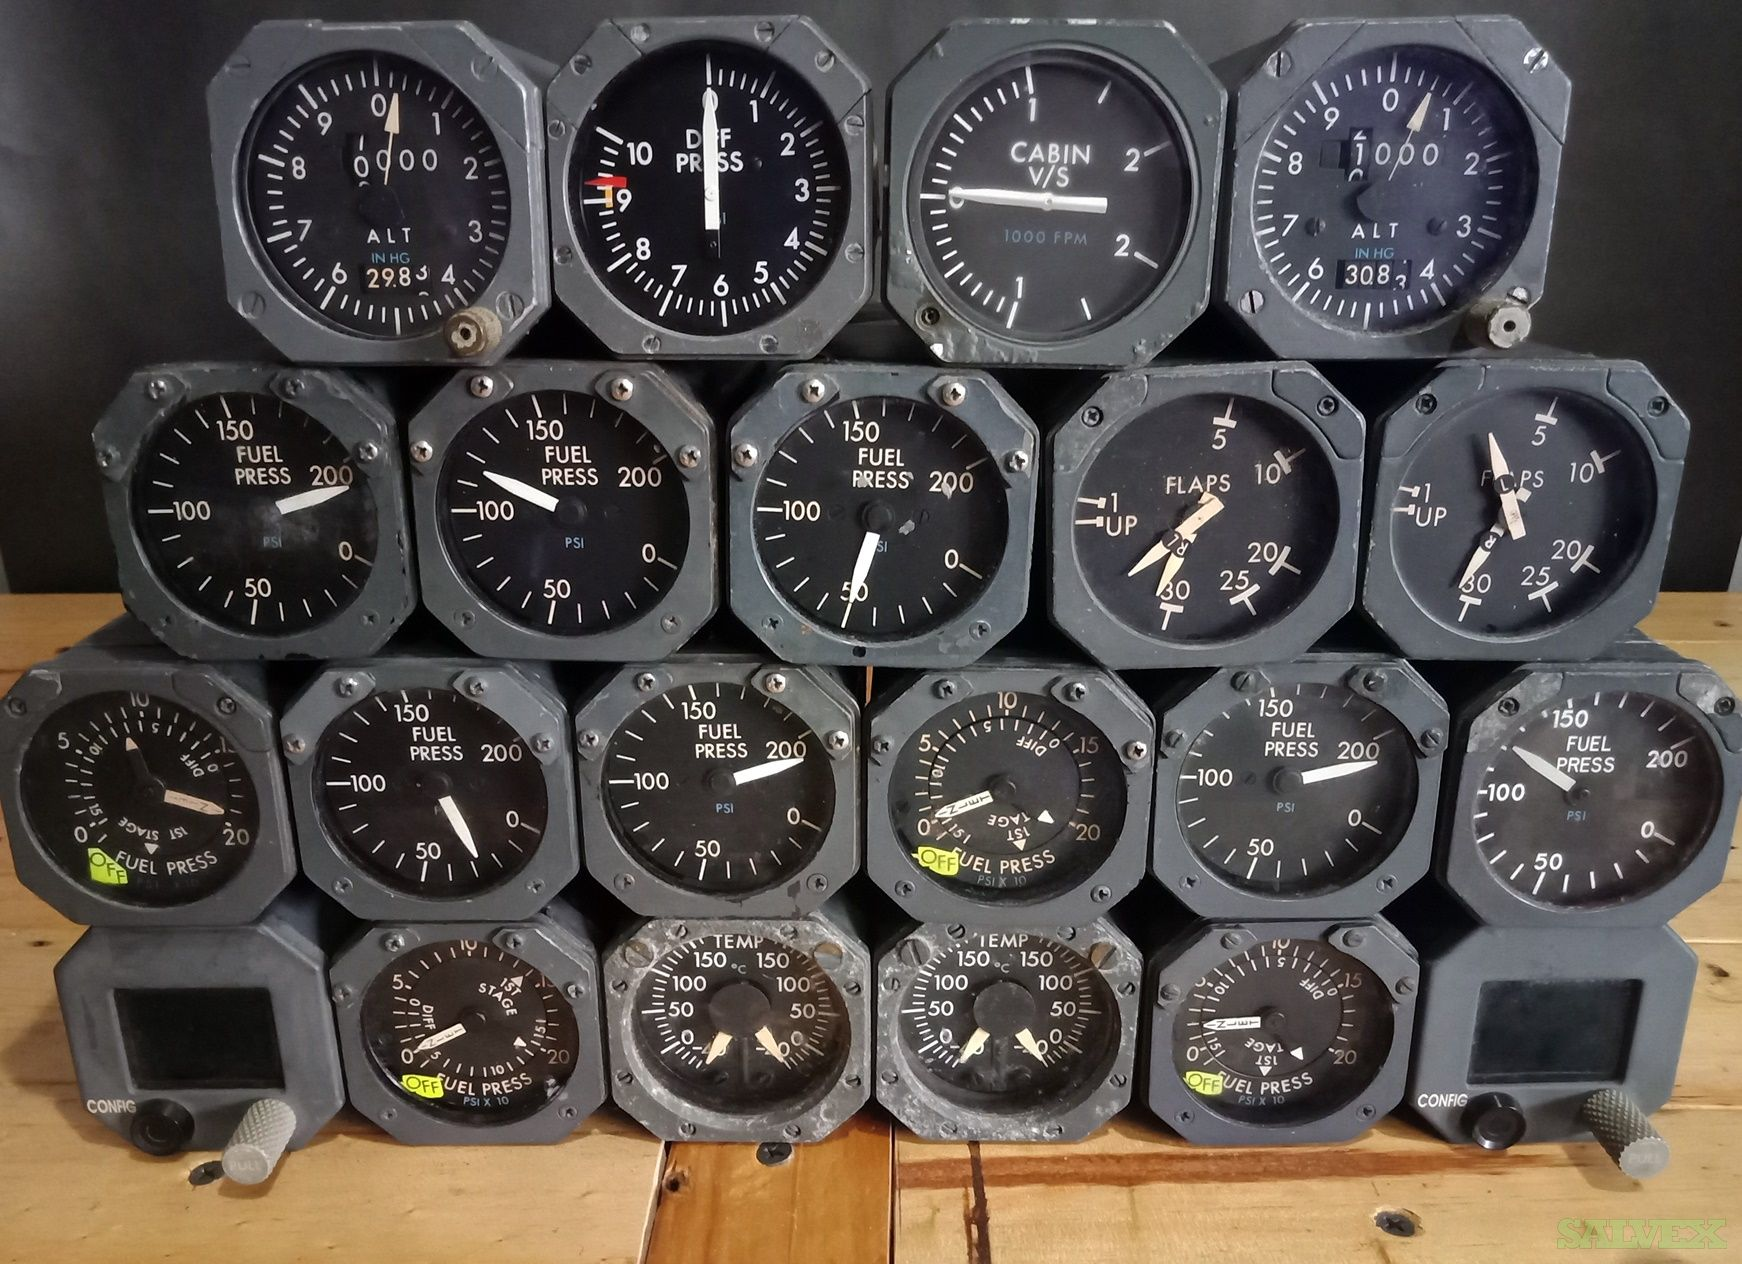 Boeing 747 Alt Cabin, Cabin Diff. Press., Dual Fuel Indicators and More (19 Units)